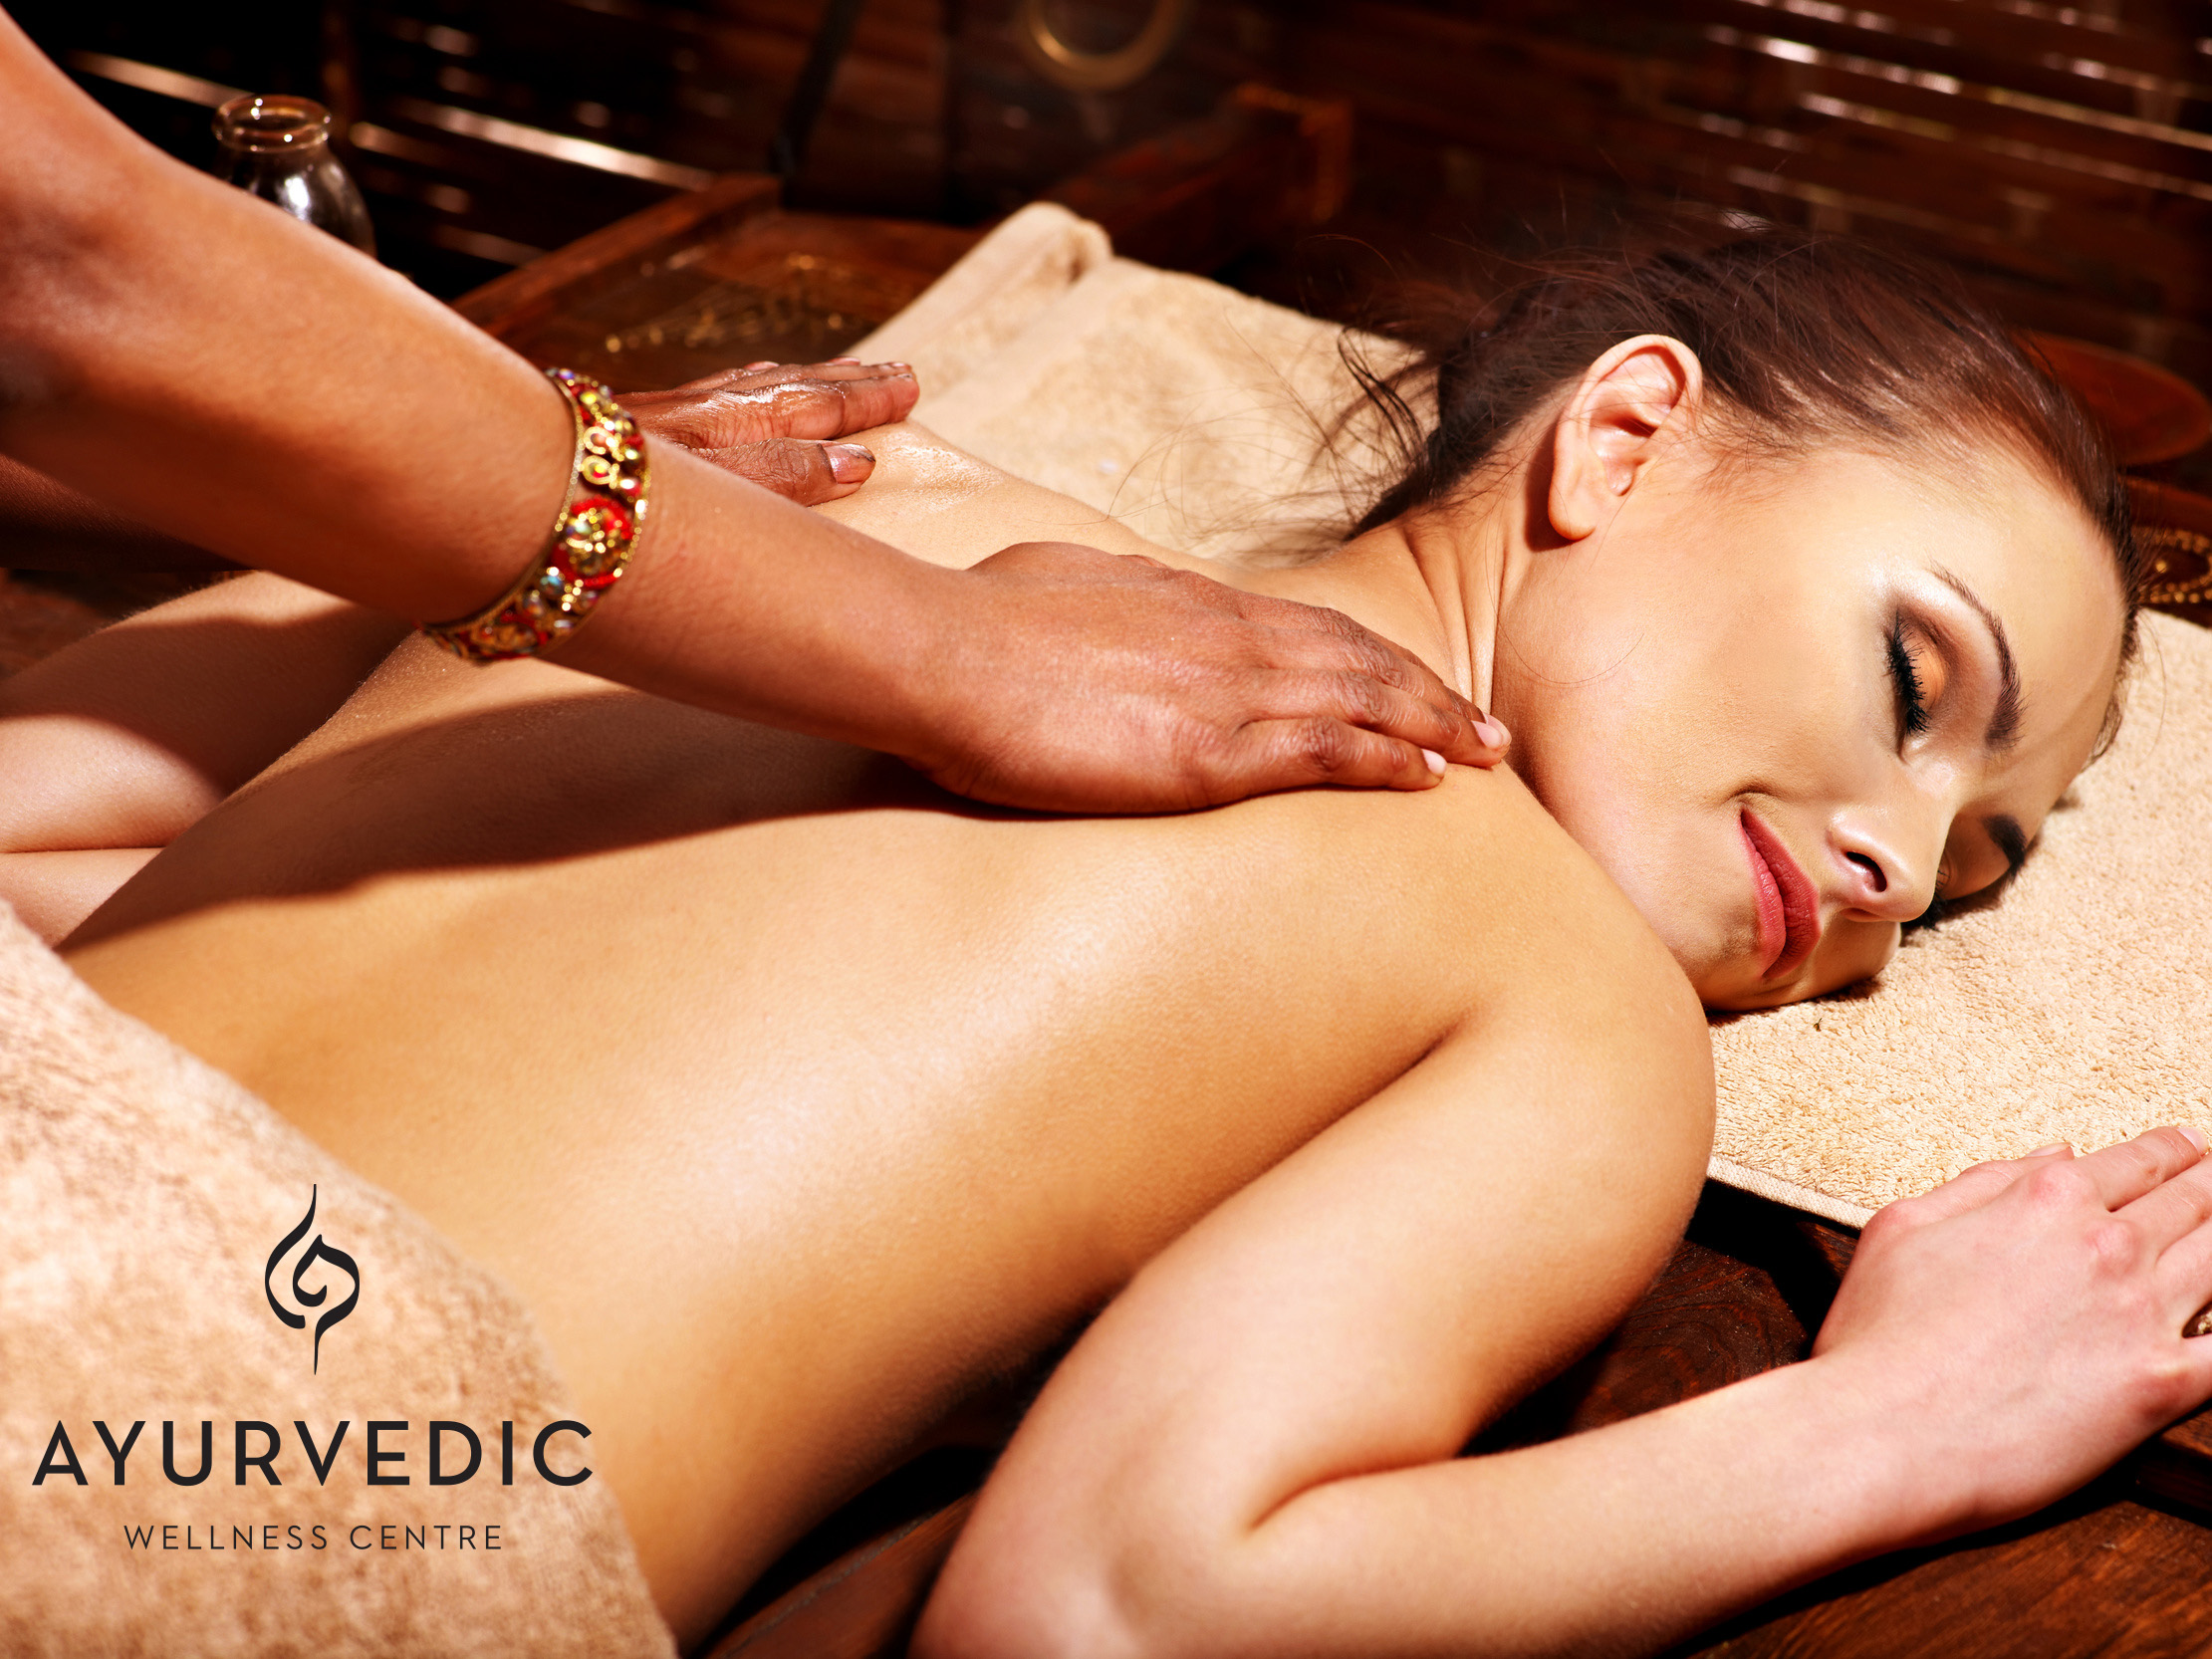 what is exotic relaxation brothels in penrith nsw